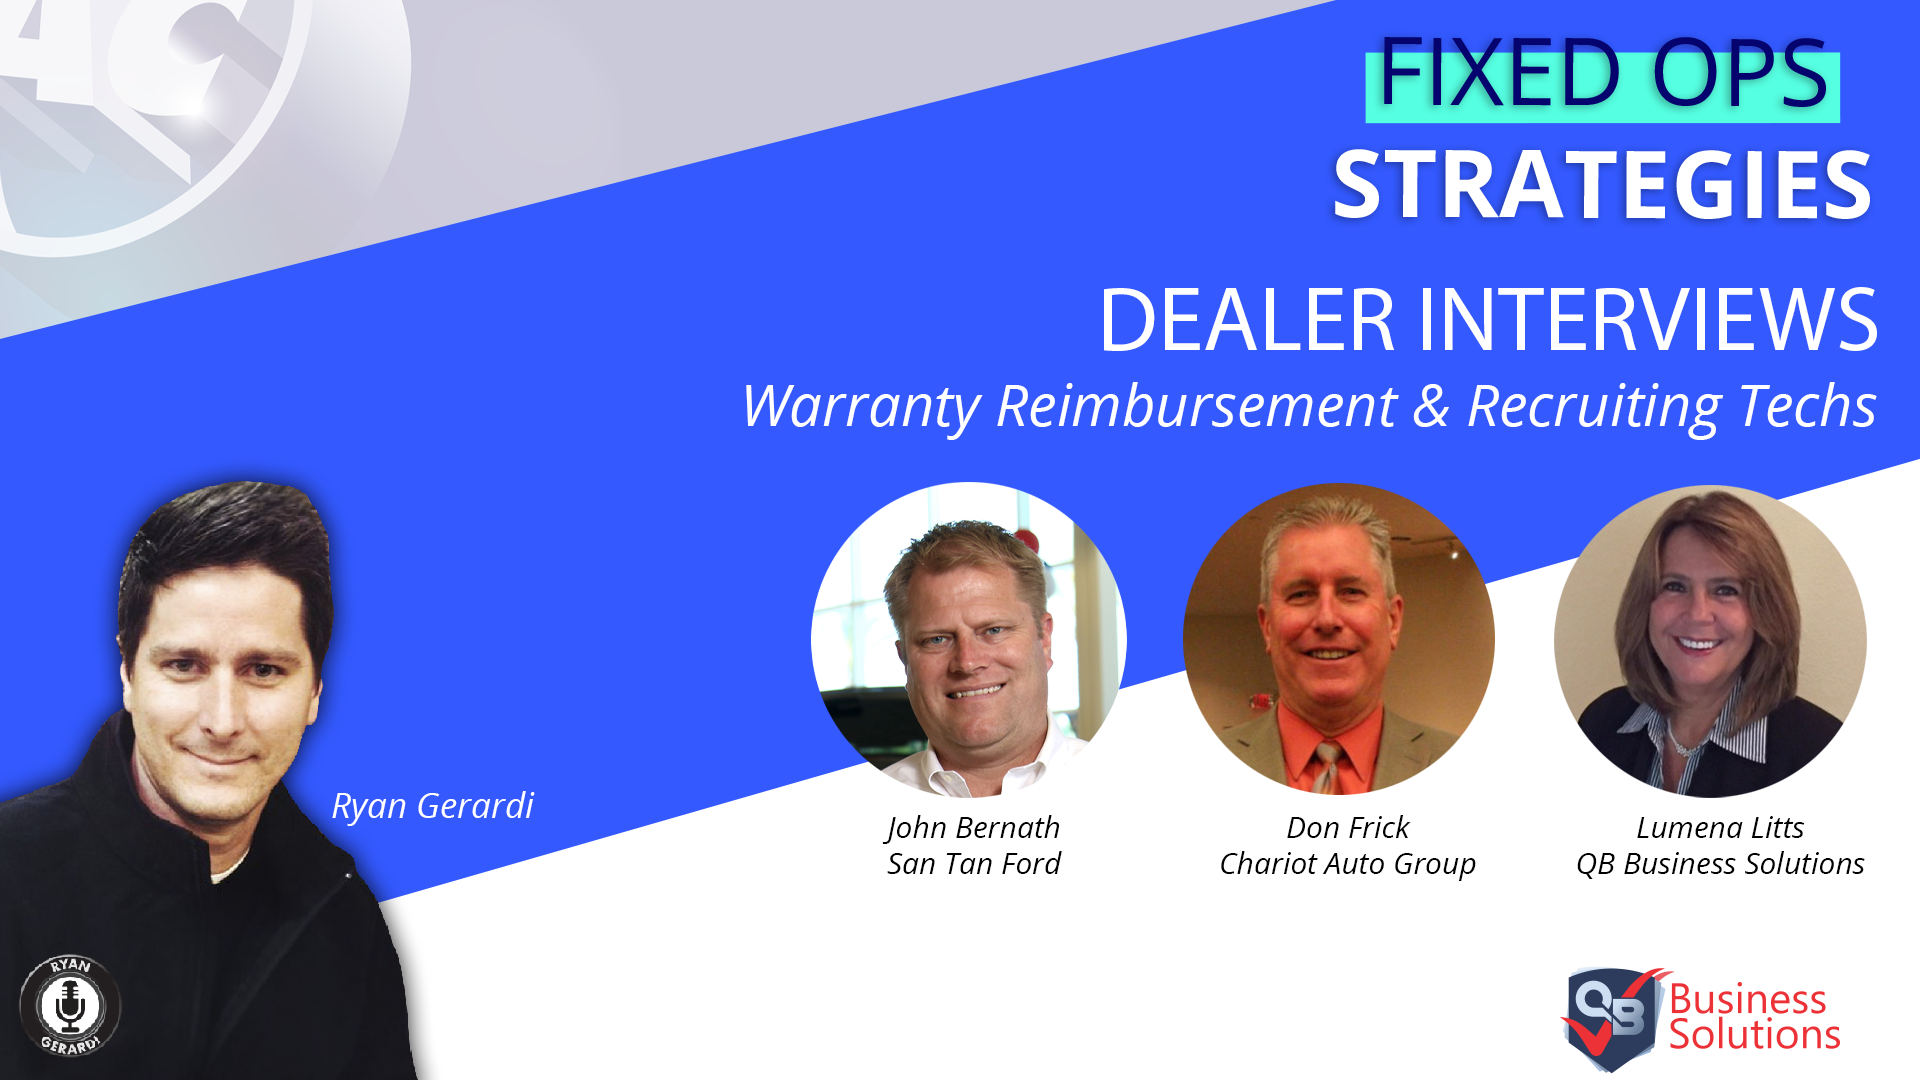 Warranty Reimbursement and Recruiting Service Techs for Your Fixed Ops Department